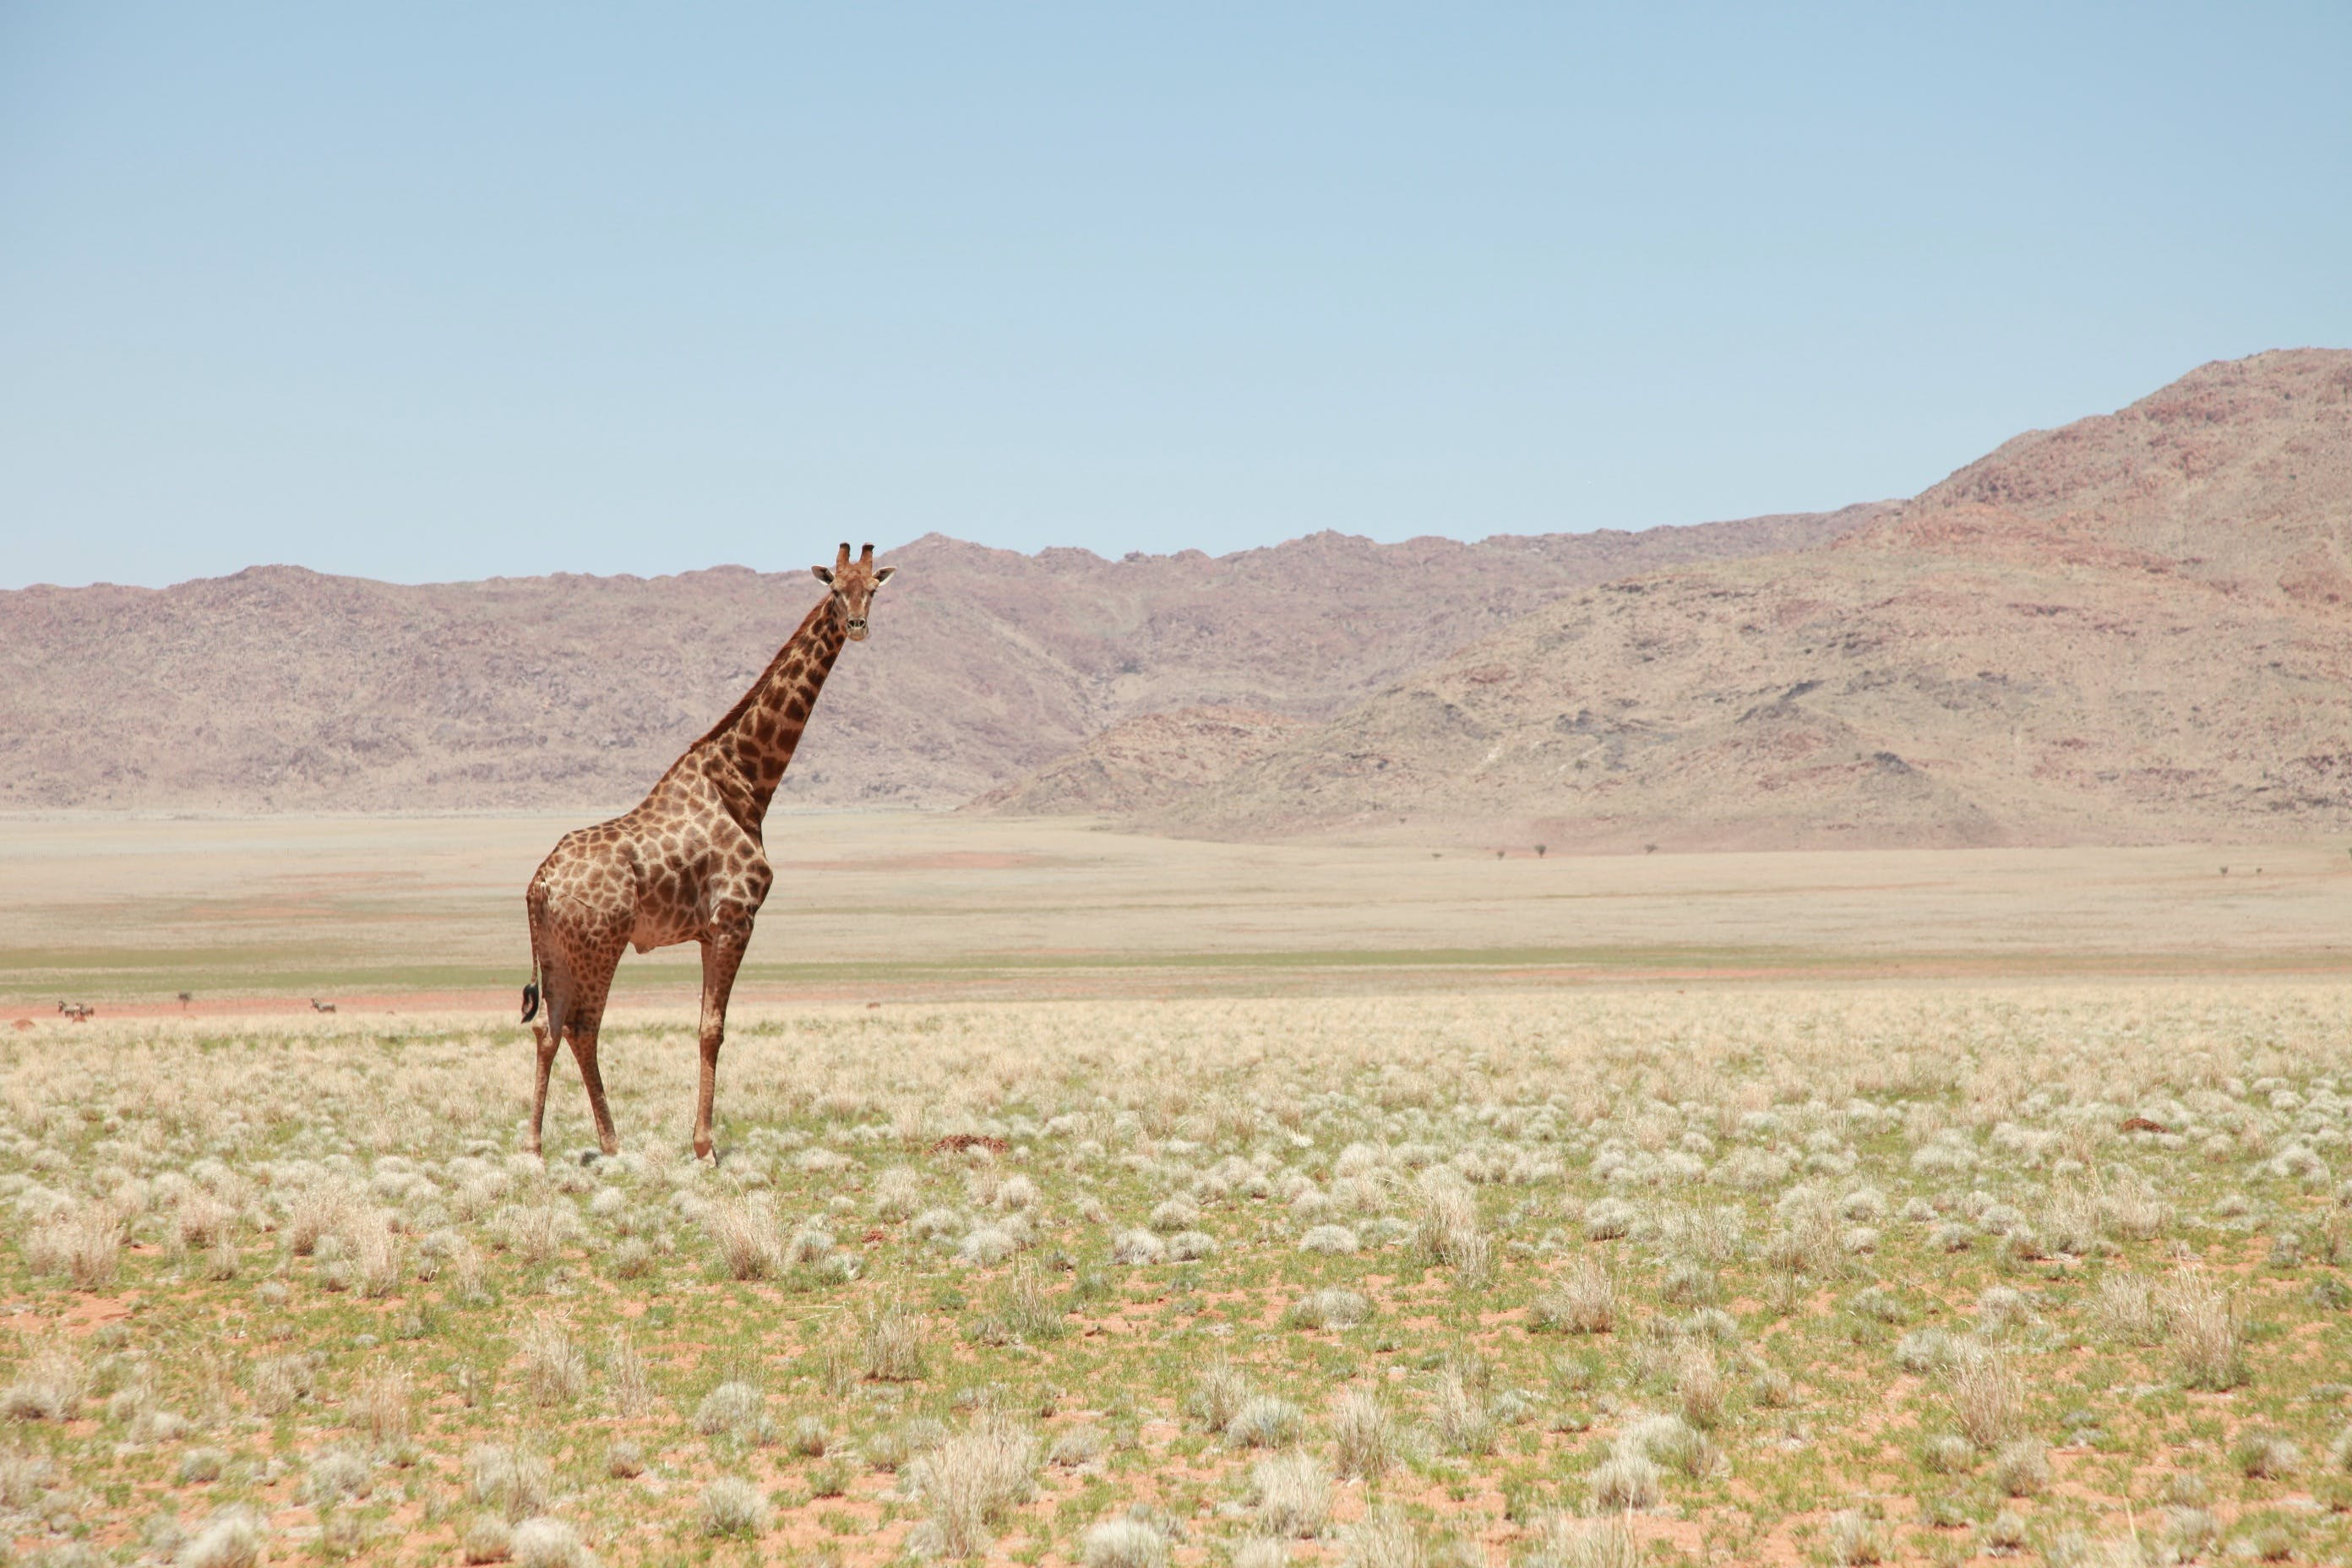 Giraffe in the Middle of the Field